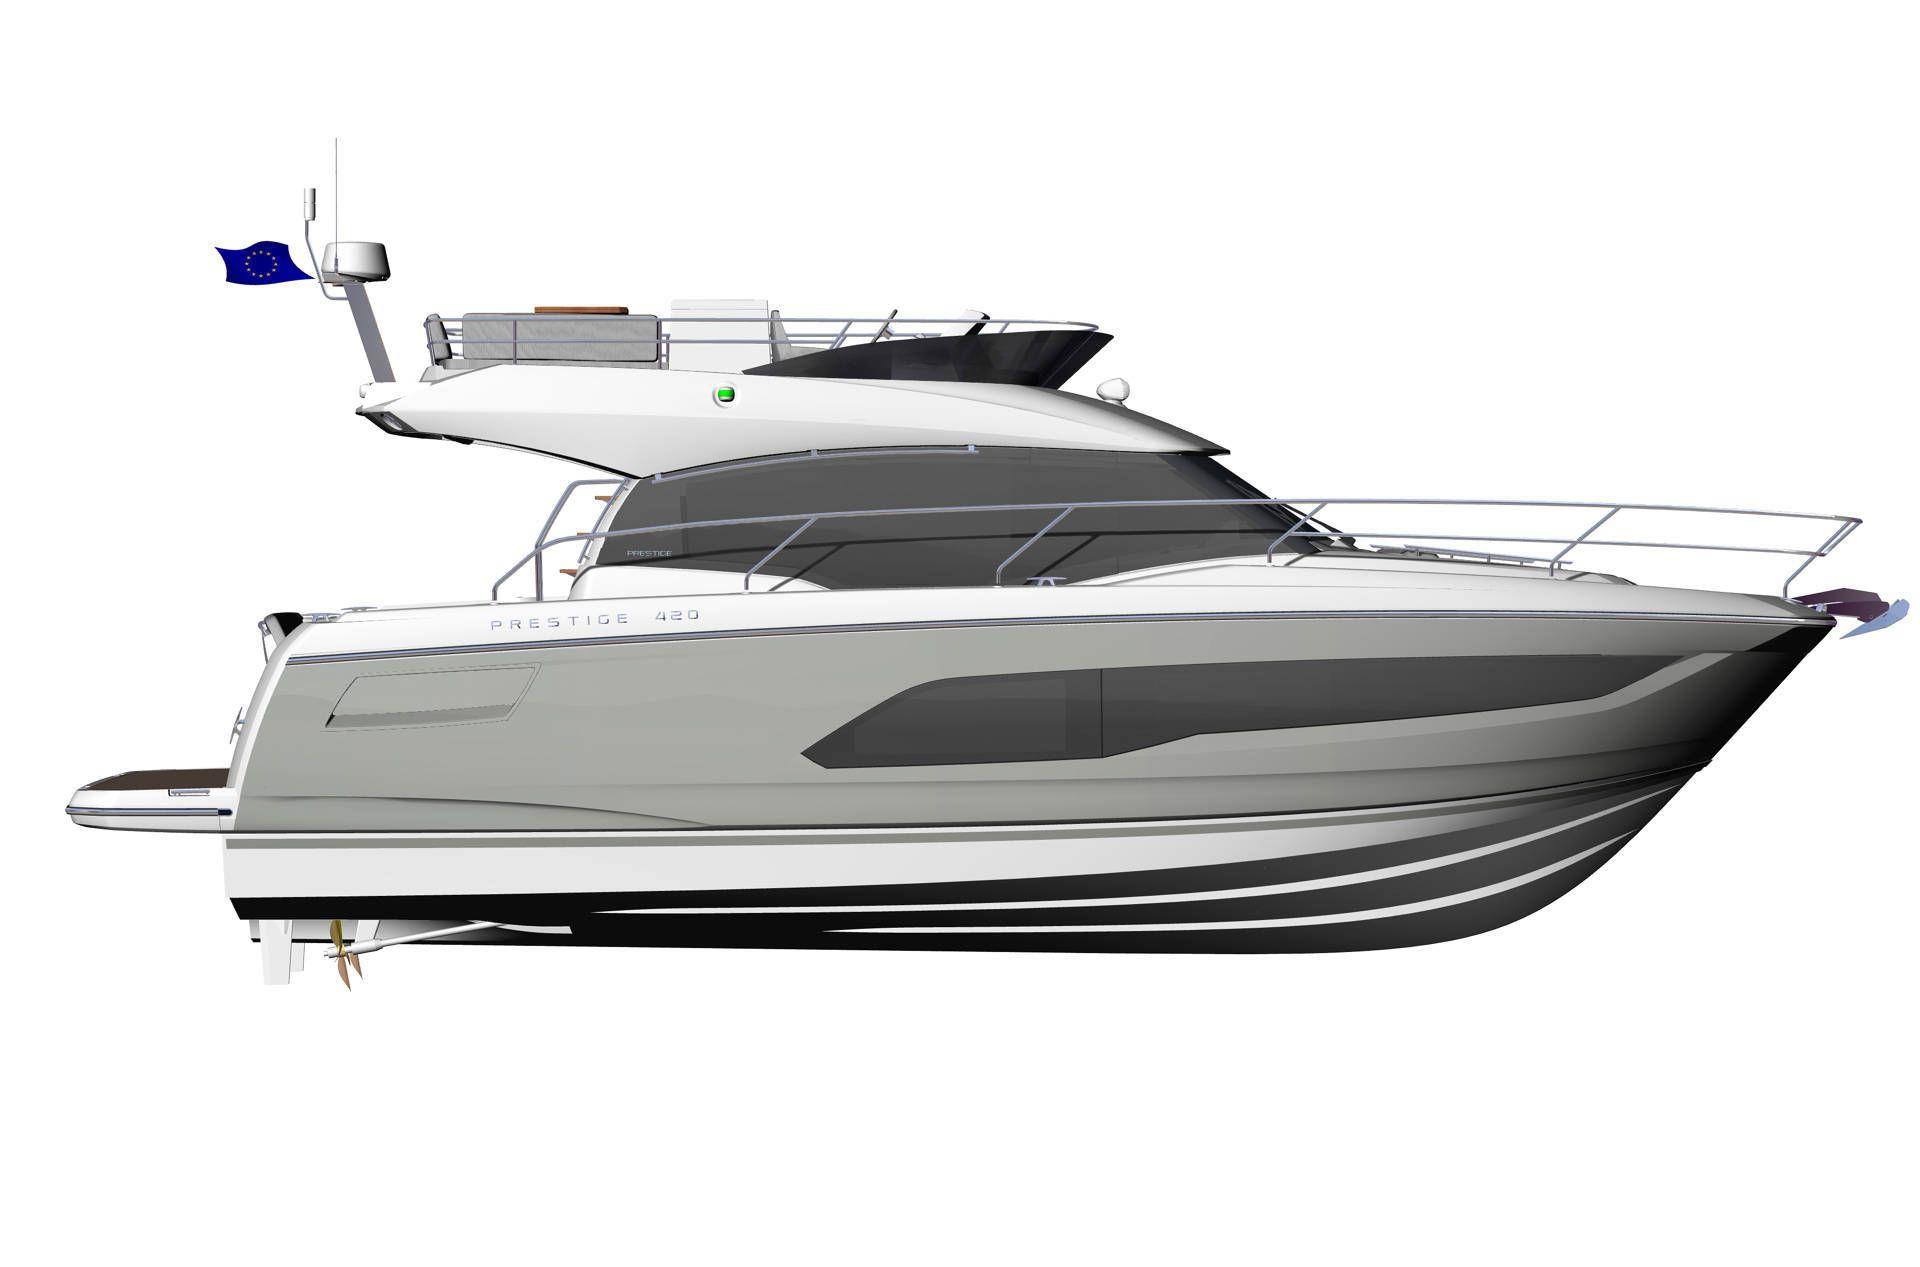 2021 Prestige 420 Fly #75562 inventory image at Sun Country Yachts in Newport Beach